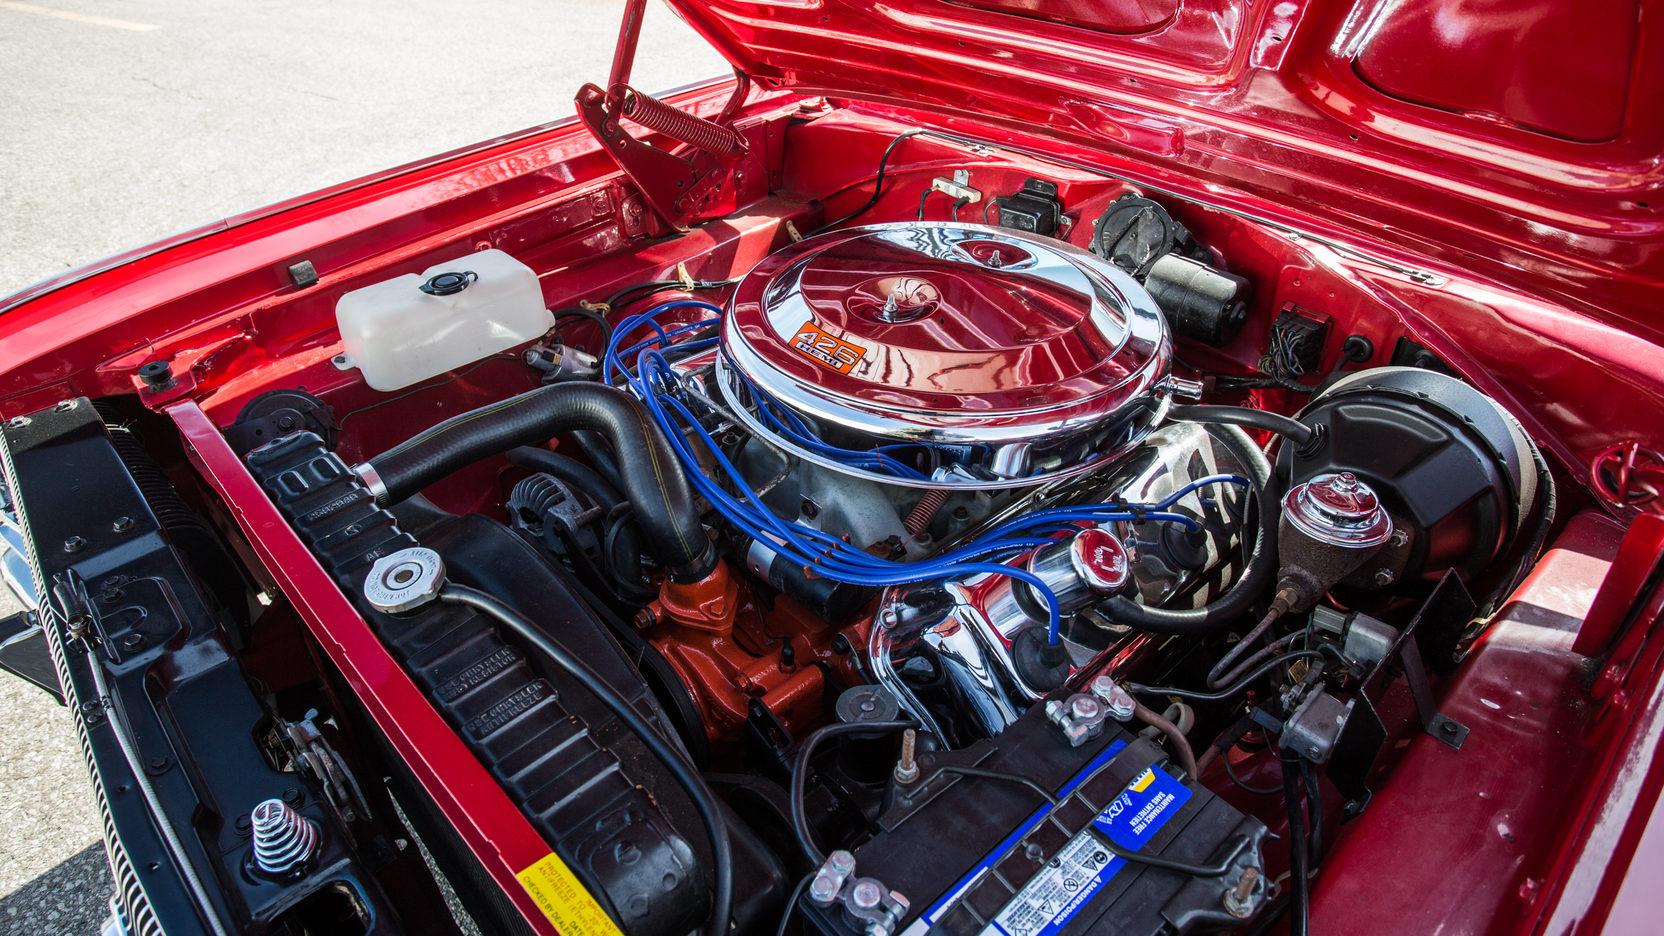 1966 Dodge Charger engine